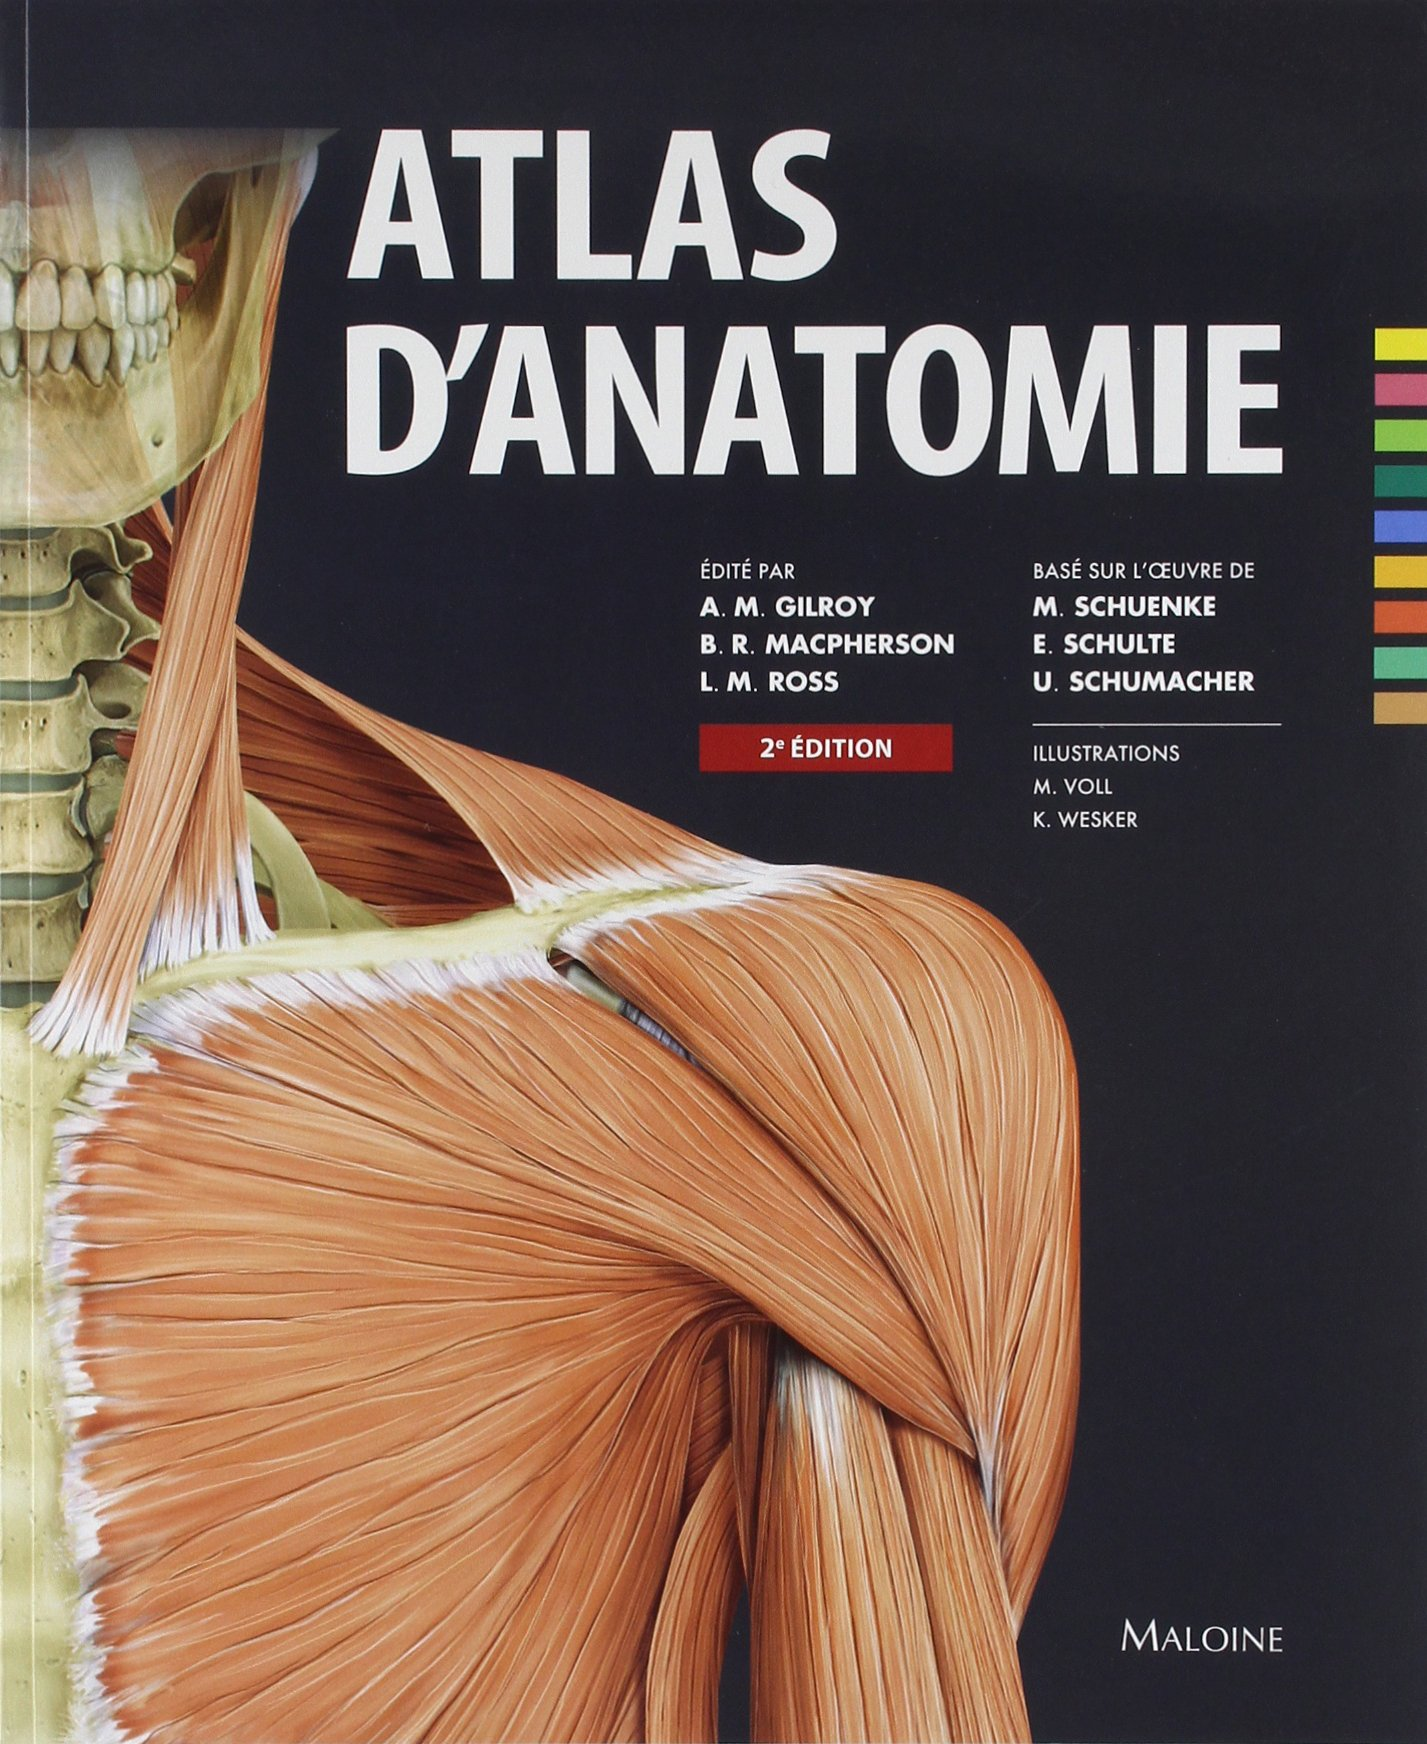 Atlas D\'anatomie: Amazon.co.uk: Anne M. Gilroy: 9782224033514: Books